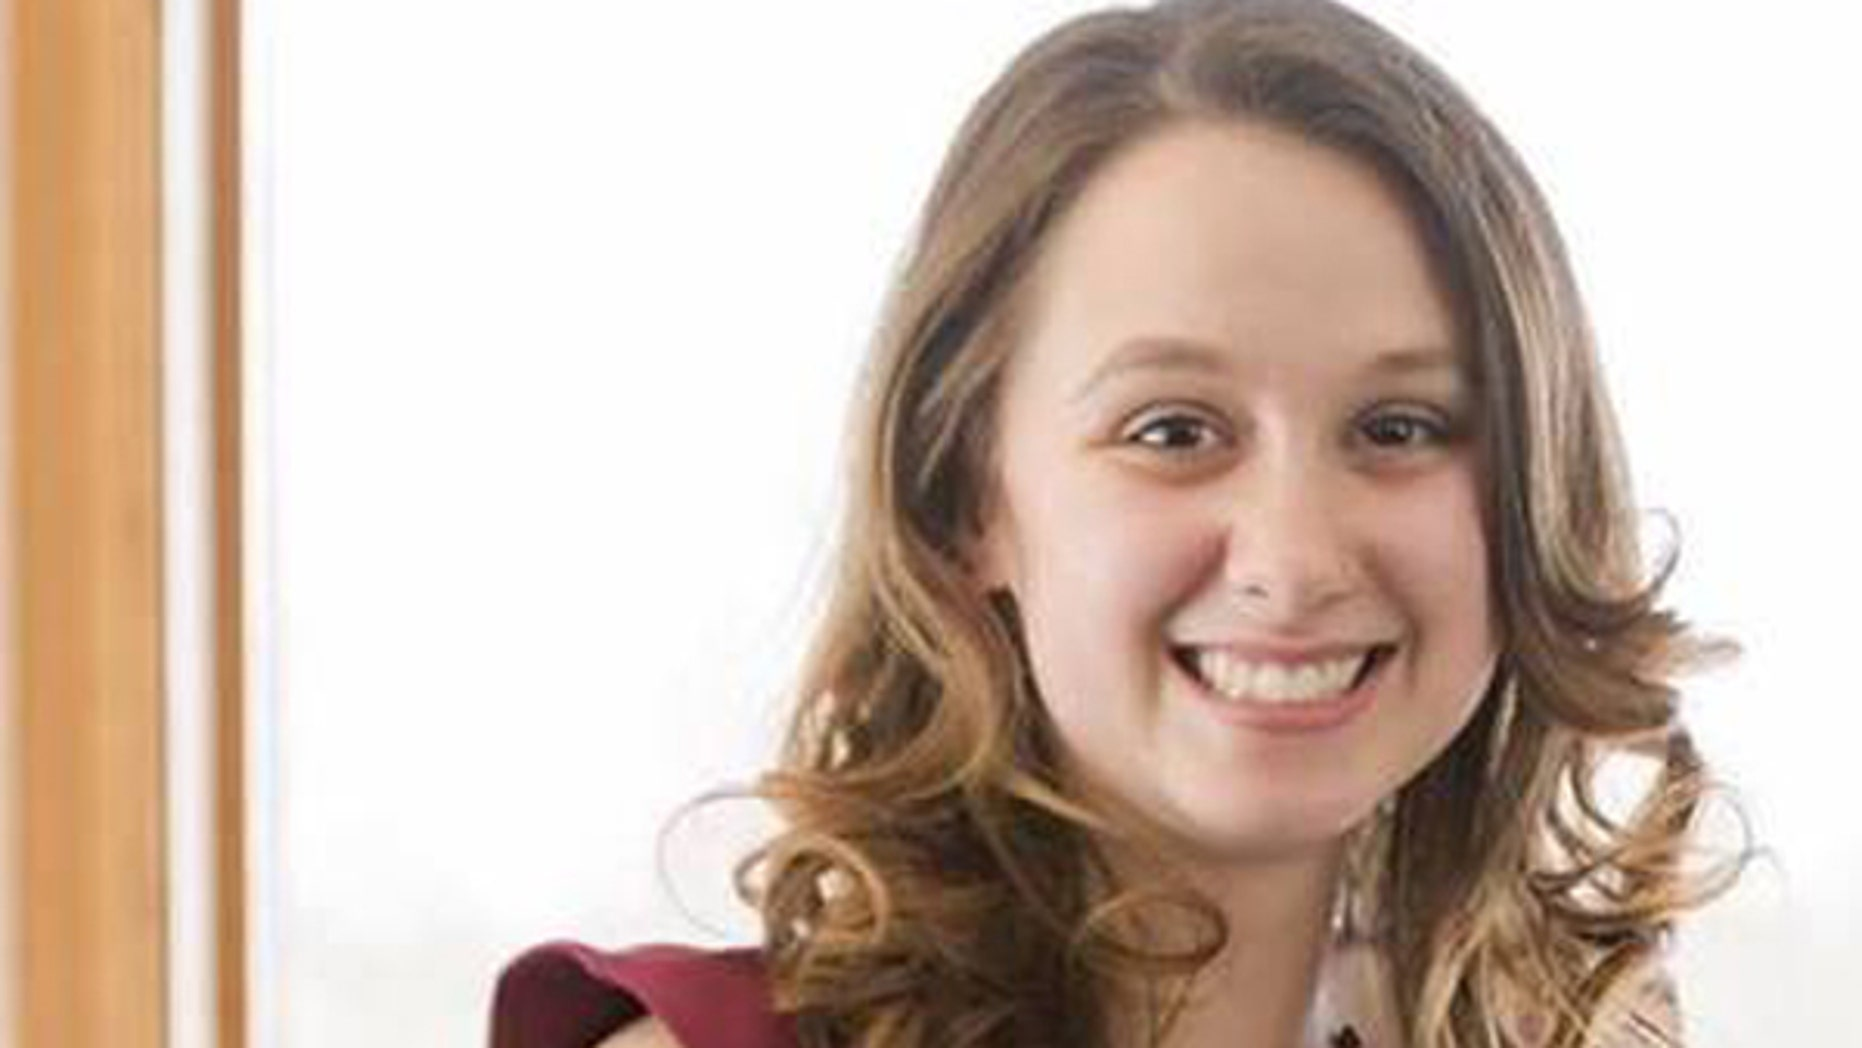 This undated photo, provided by the family, shows 28-year-old Danielle Stislicki.